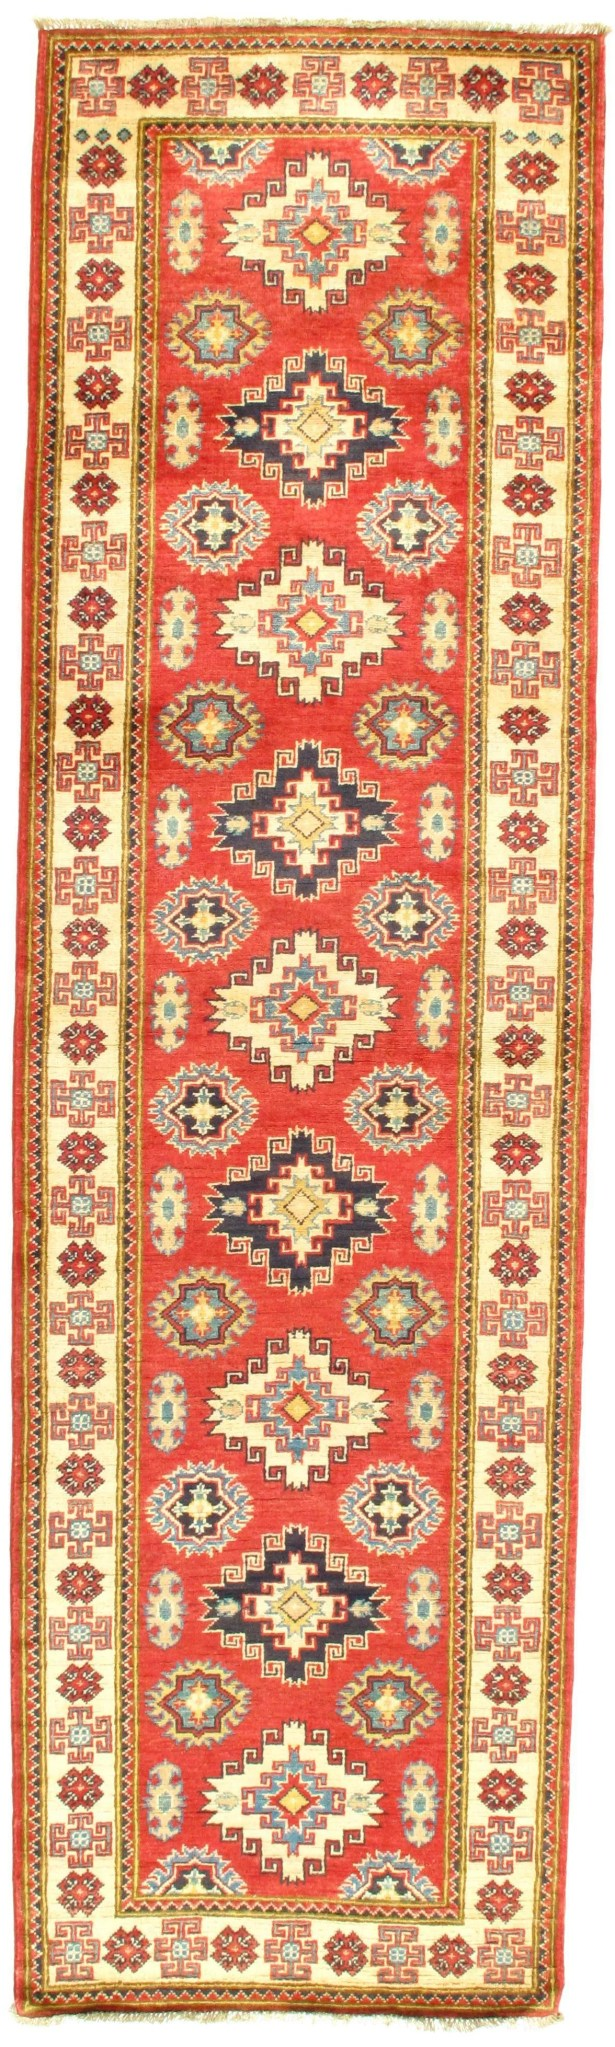 Kazak Design Hand-Knotted Wool Red Area Rug Rug Size: Runner 2'8